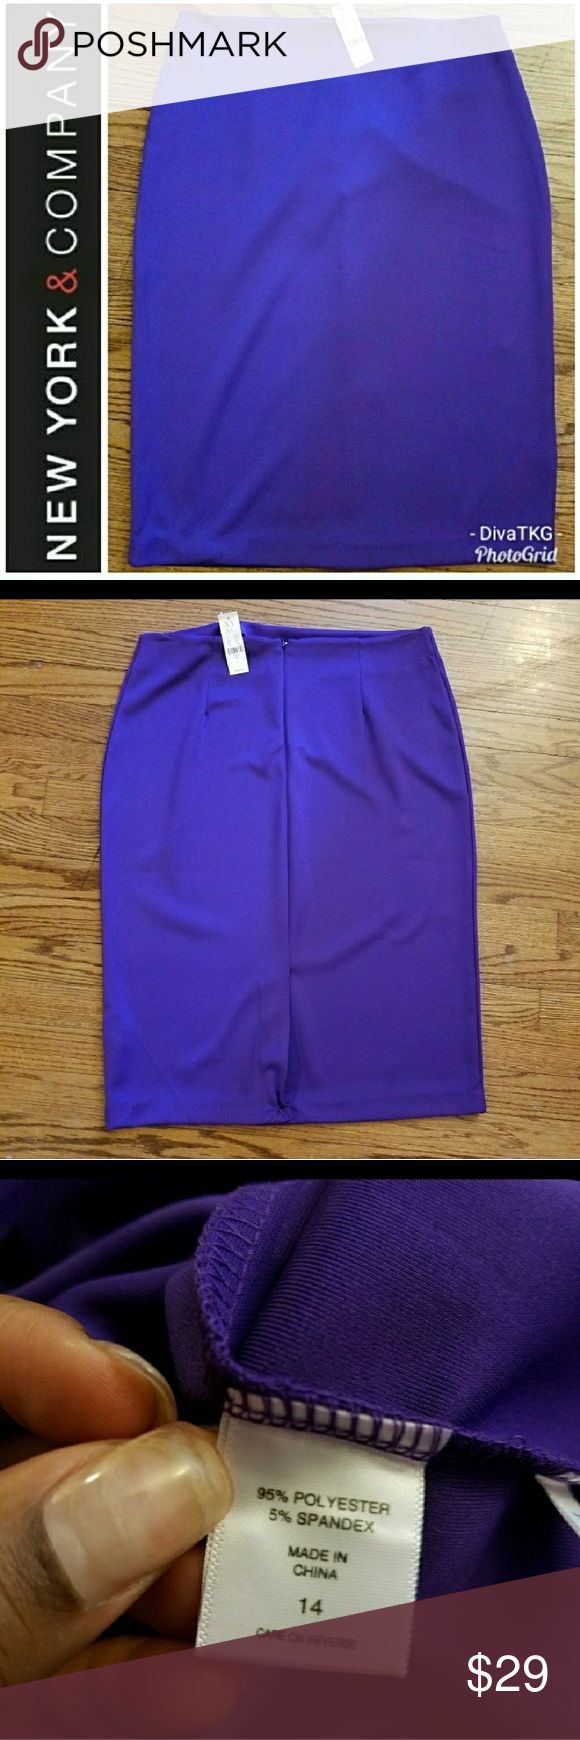 New York and Company Purple Pencil Skirt New With Tags. New York & Company Skirts Pencil